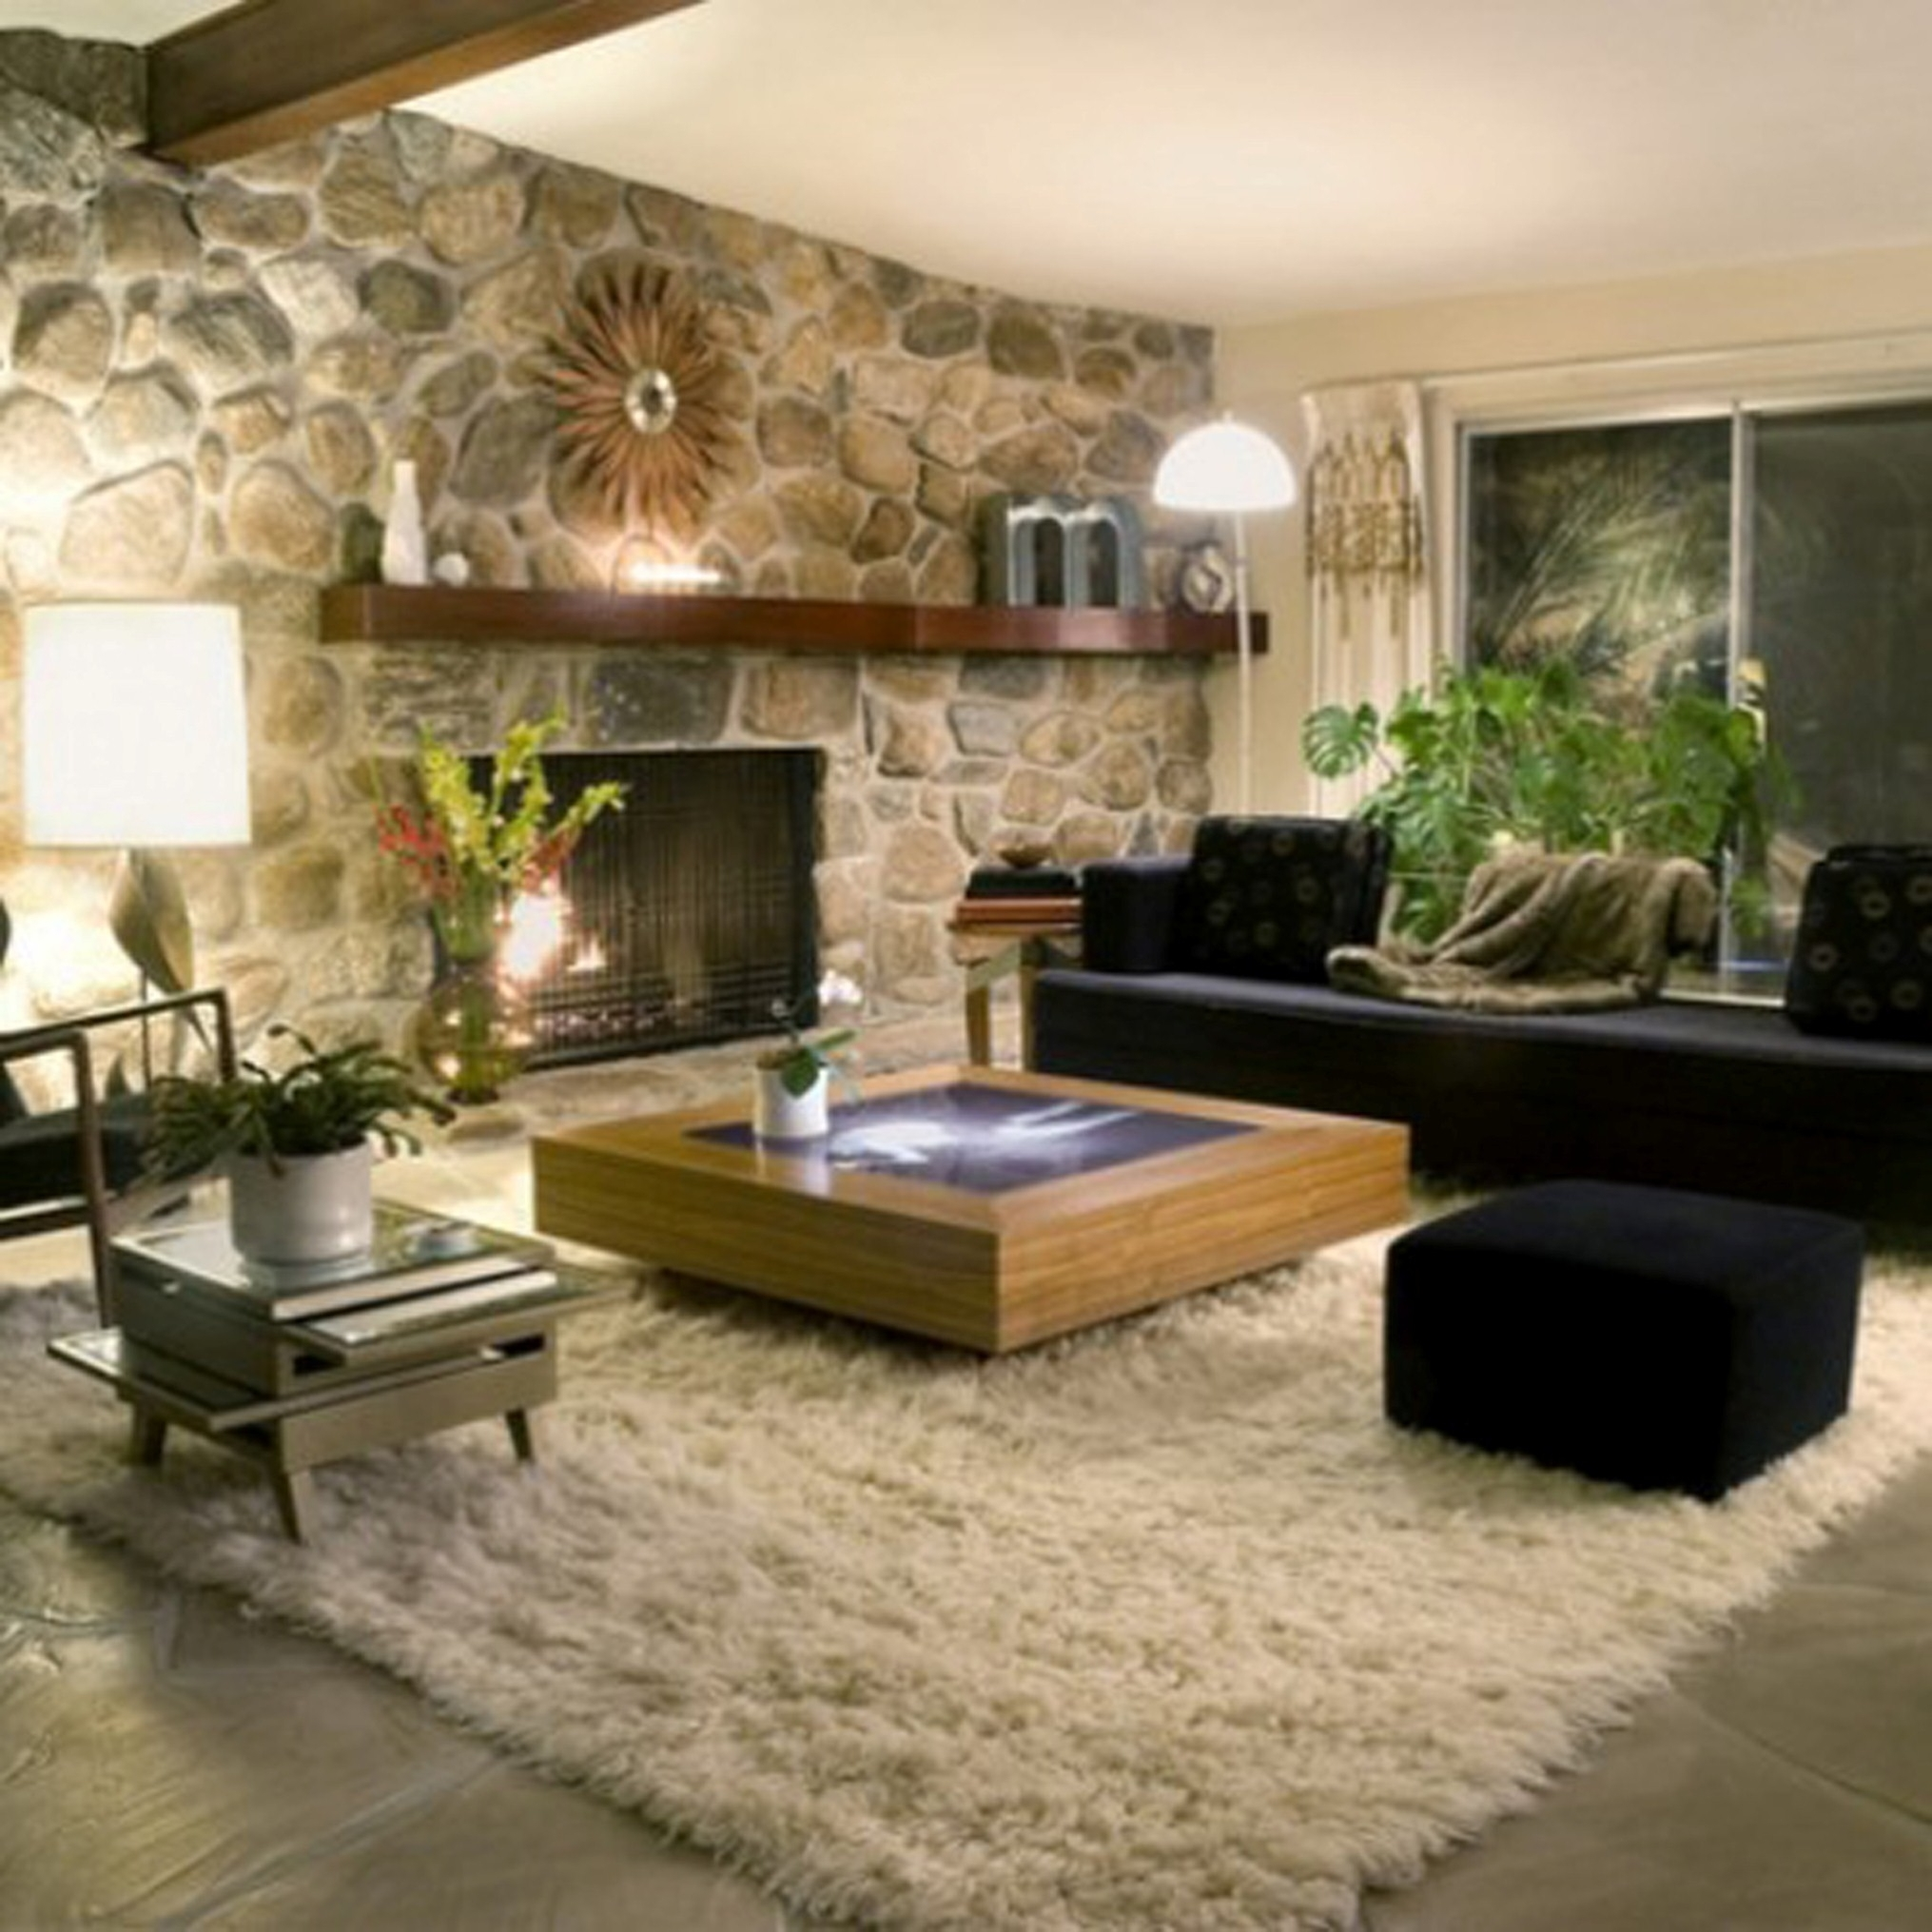 modern-living-room-decoration-with-sweet-black-fabric-sofa-design-even-charming-natural-stone-wall-decor